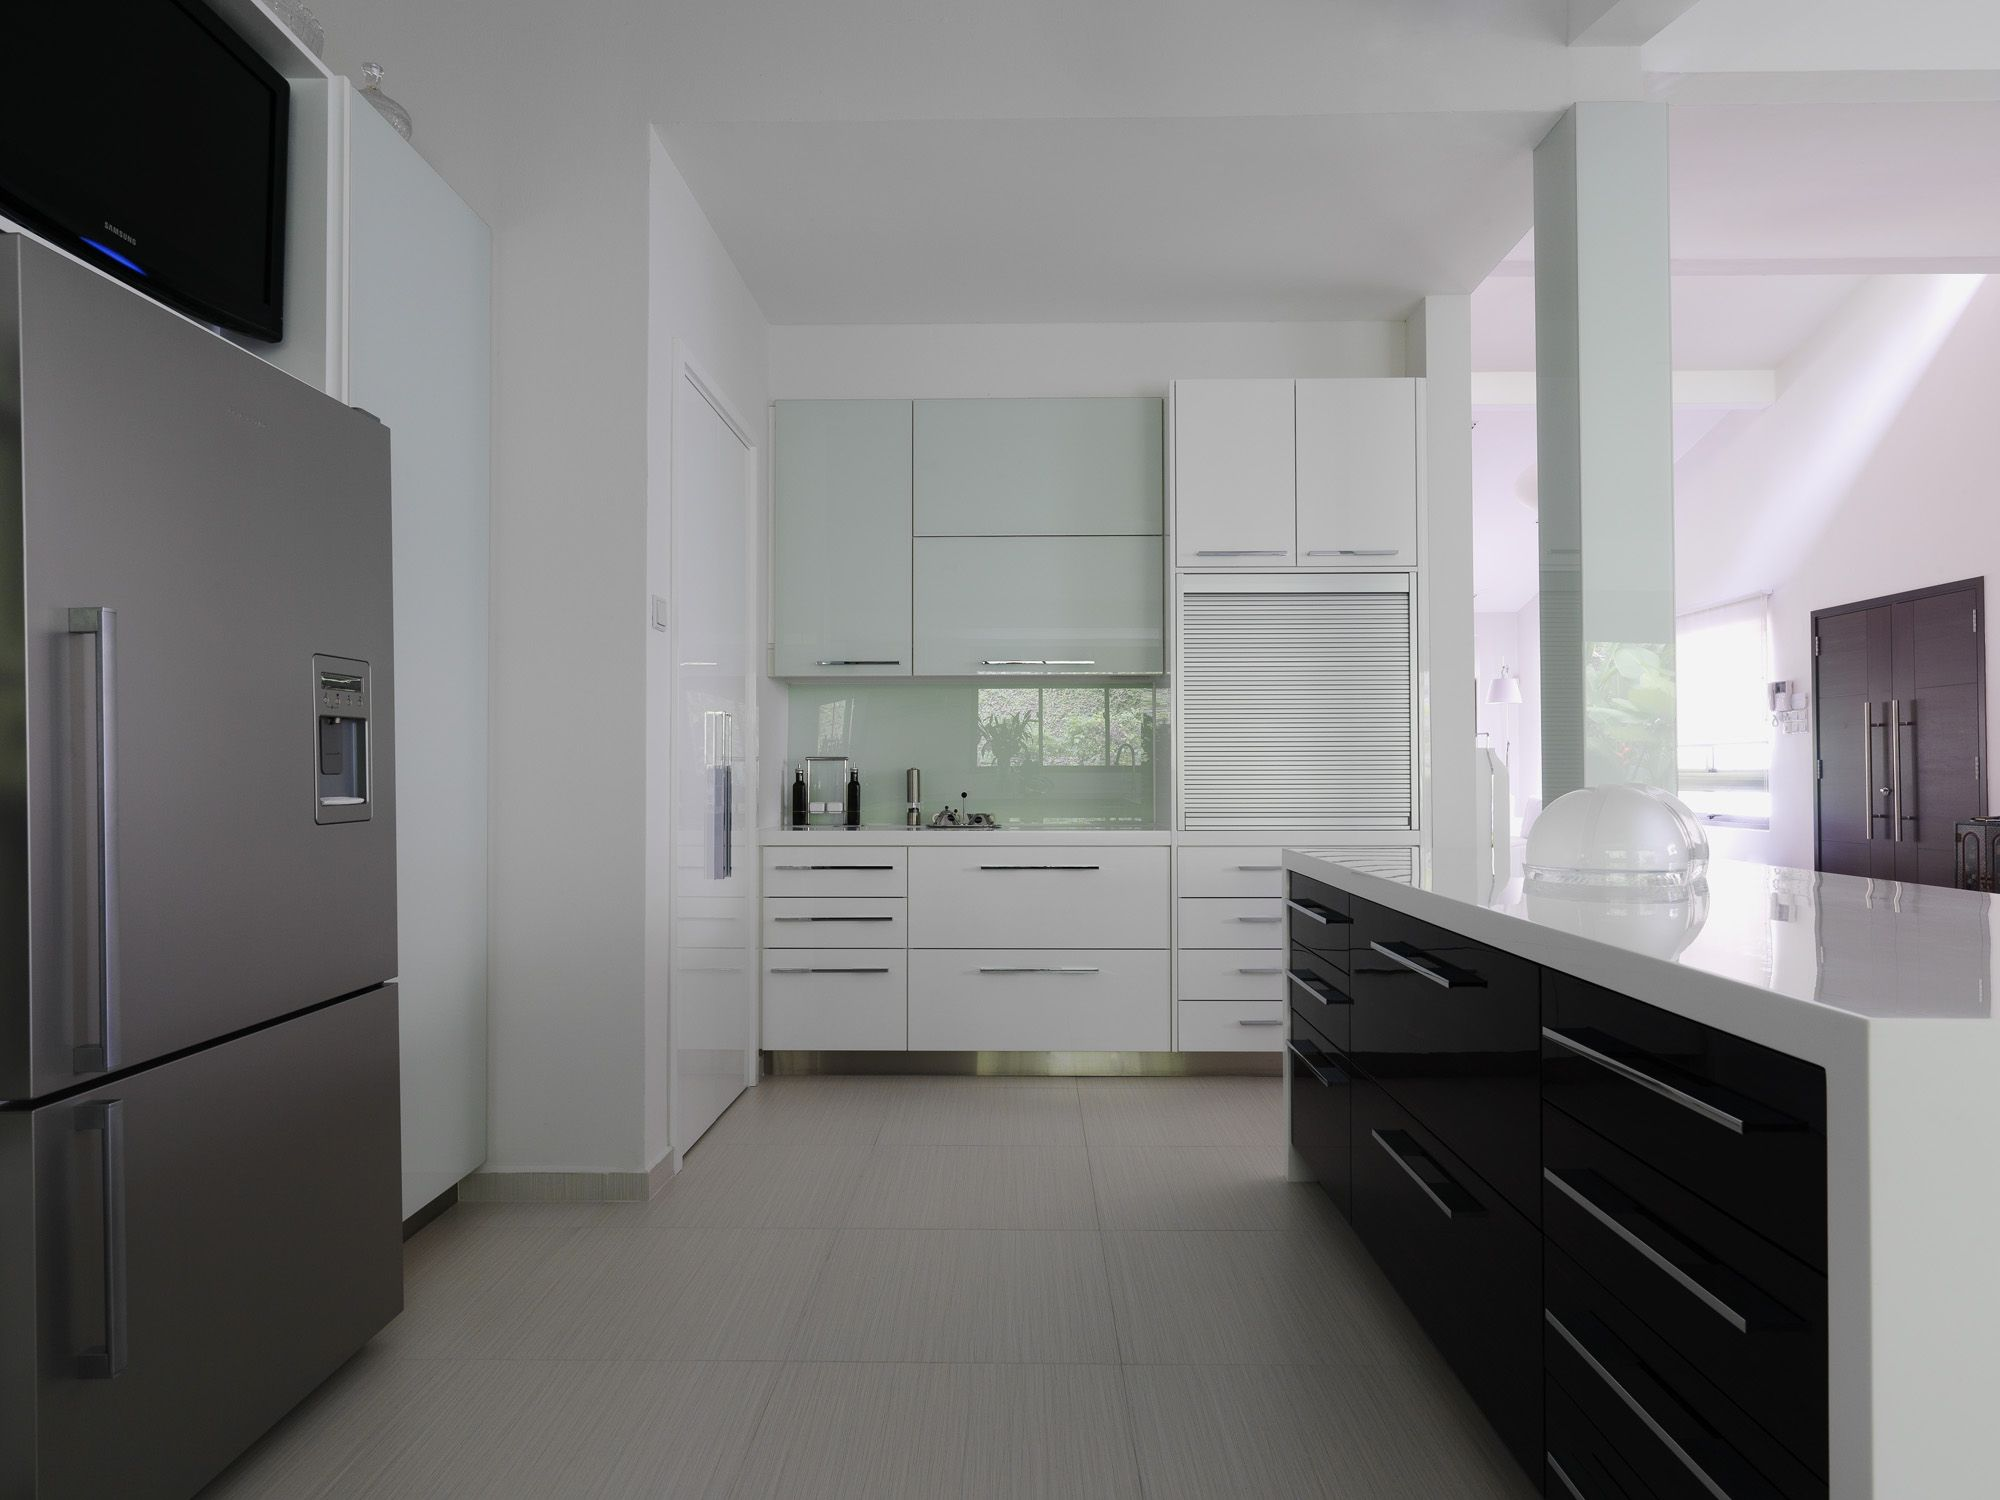 the white lacquered high gloss kitchen cabinets look complete with complimenting silver colored roller shutters